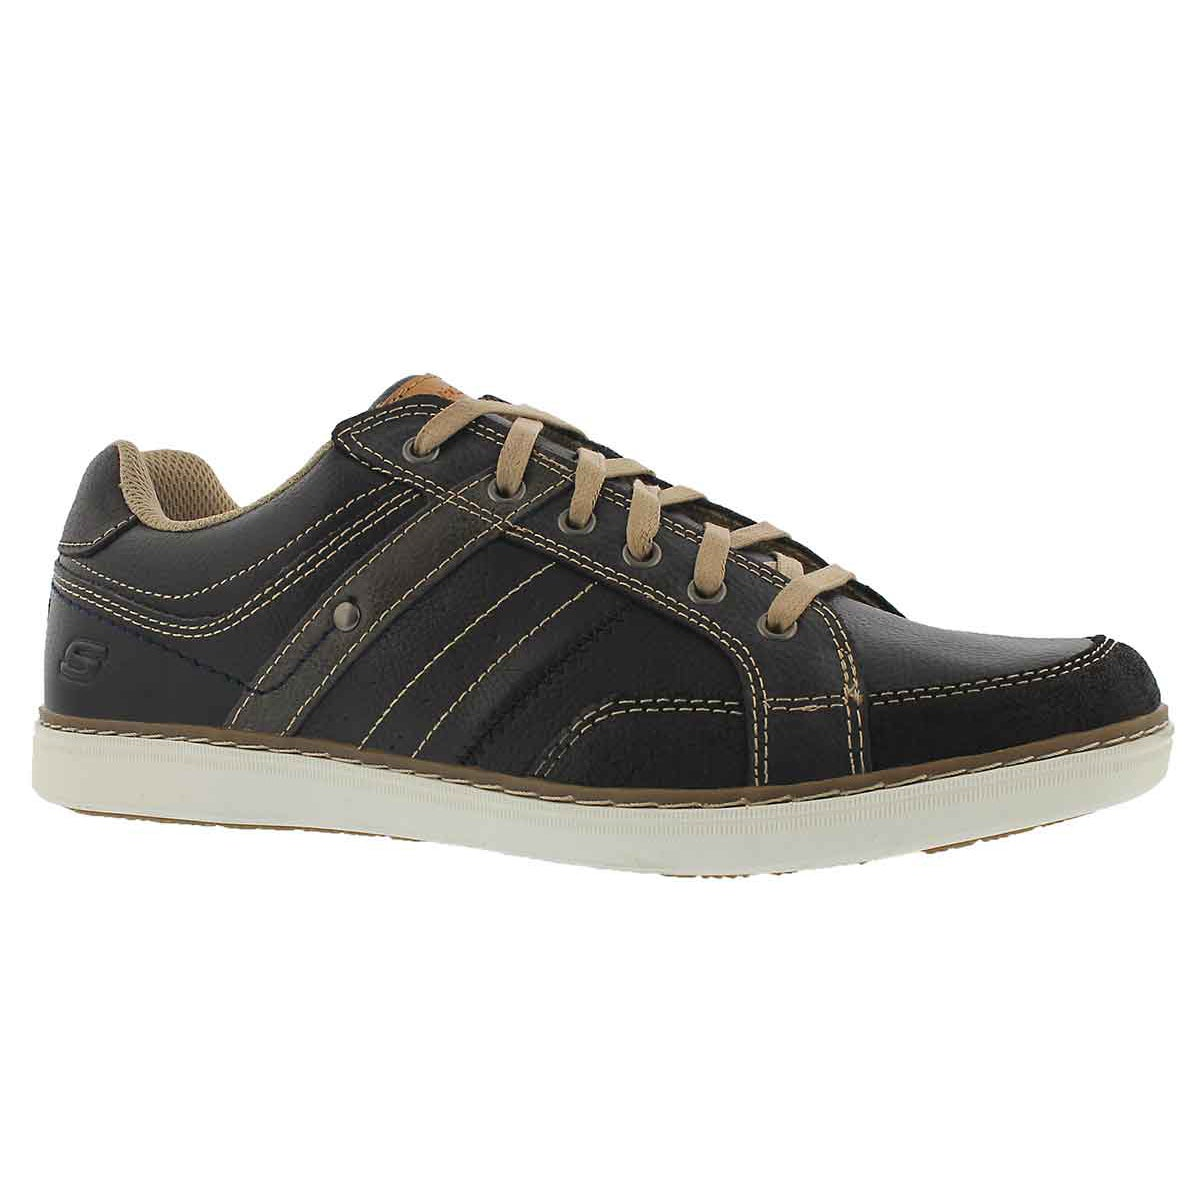 Men's LANSON TORBEN black lace up sneakers